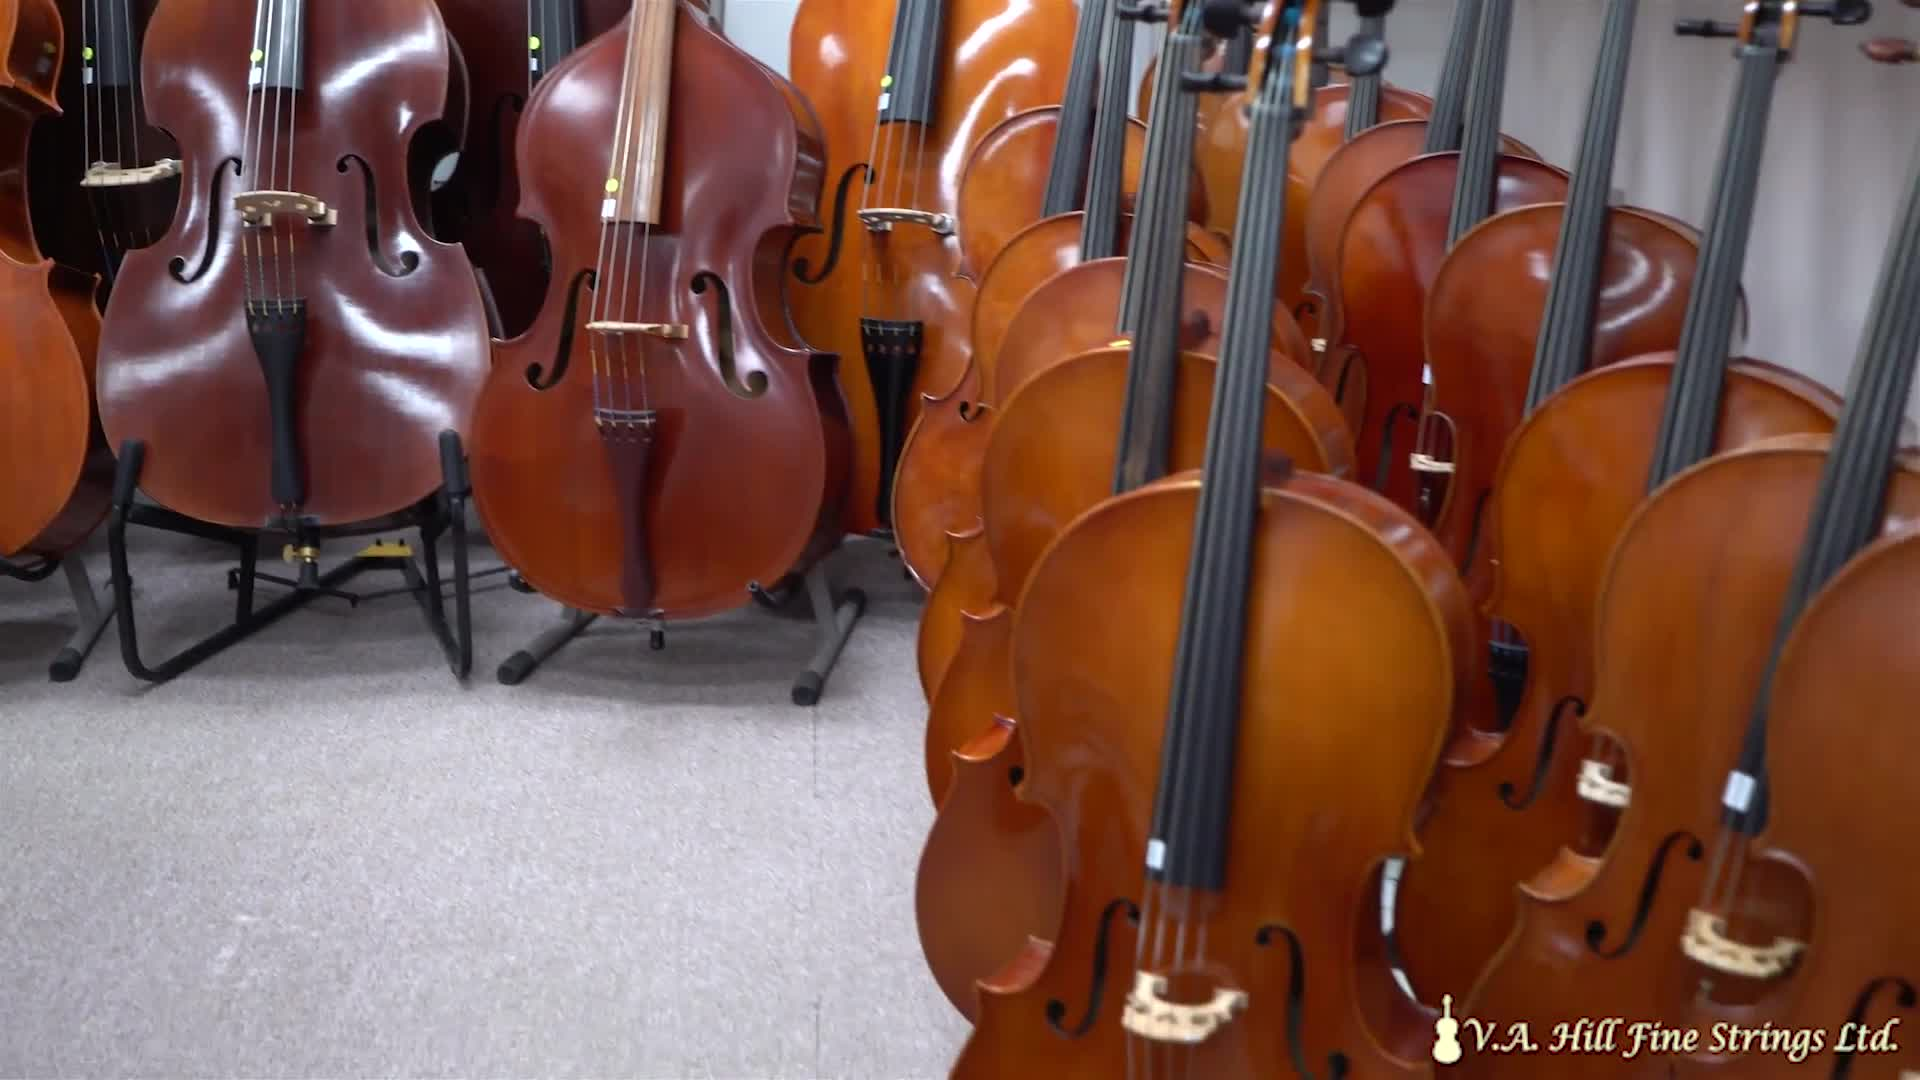 V A Hill Fine Strings Ltd - Musical Instrument Stores - 403-640-3773